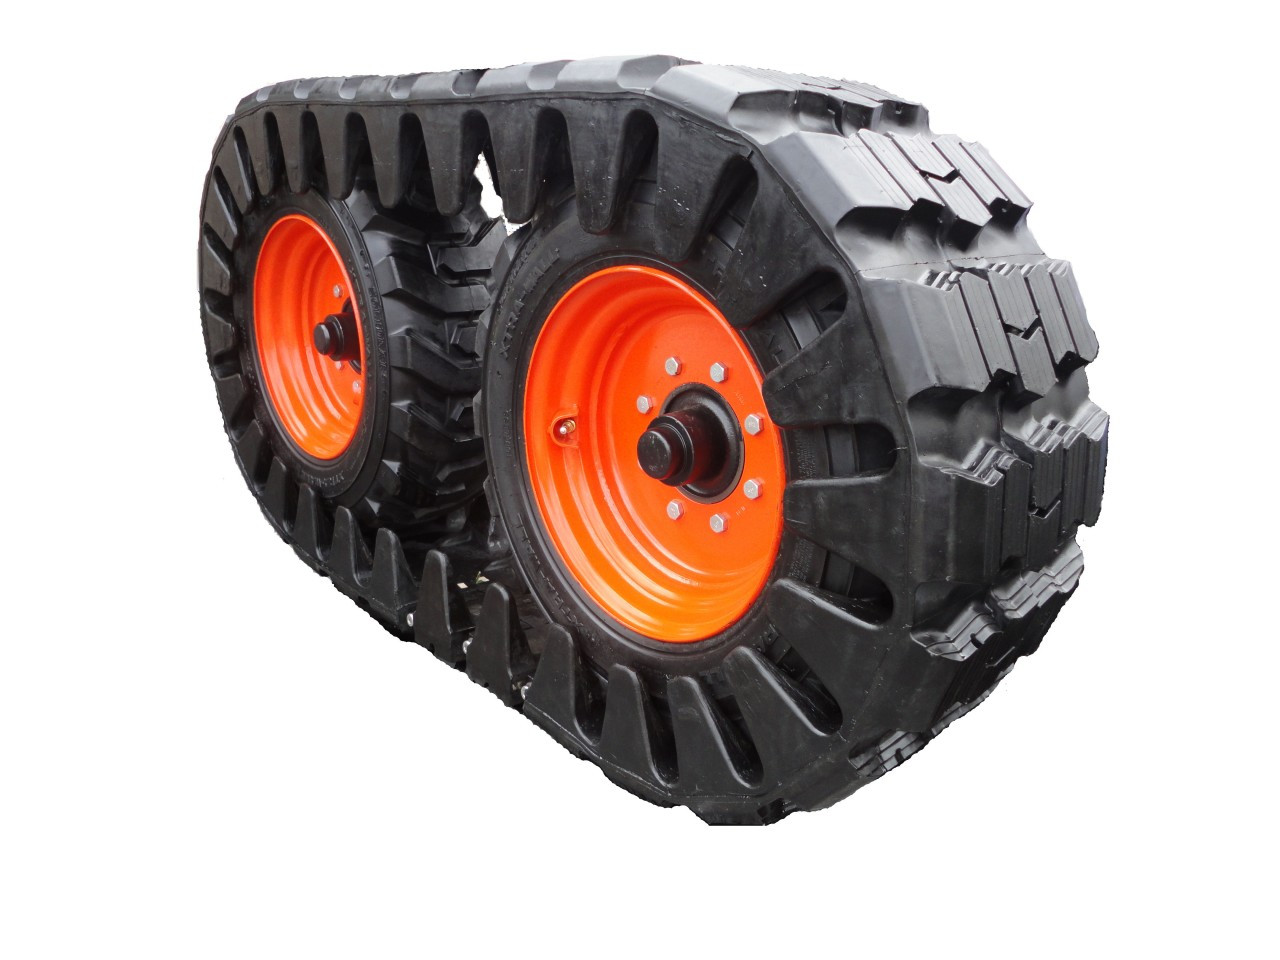 Skid Steer Rubber Tracks For Tire 10 x 16.5 Size